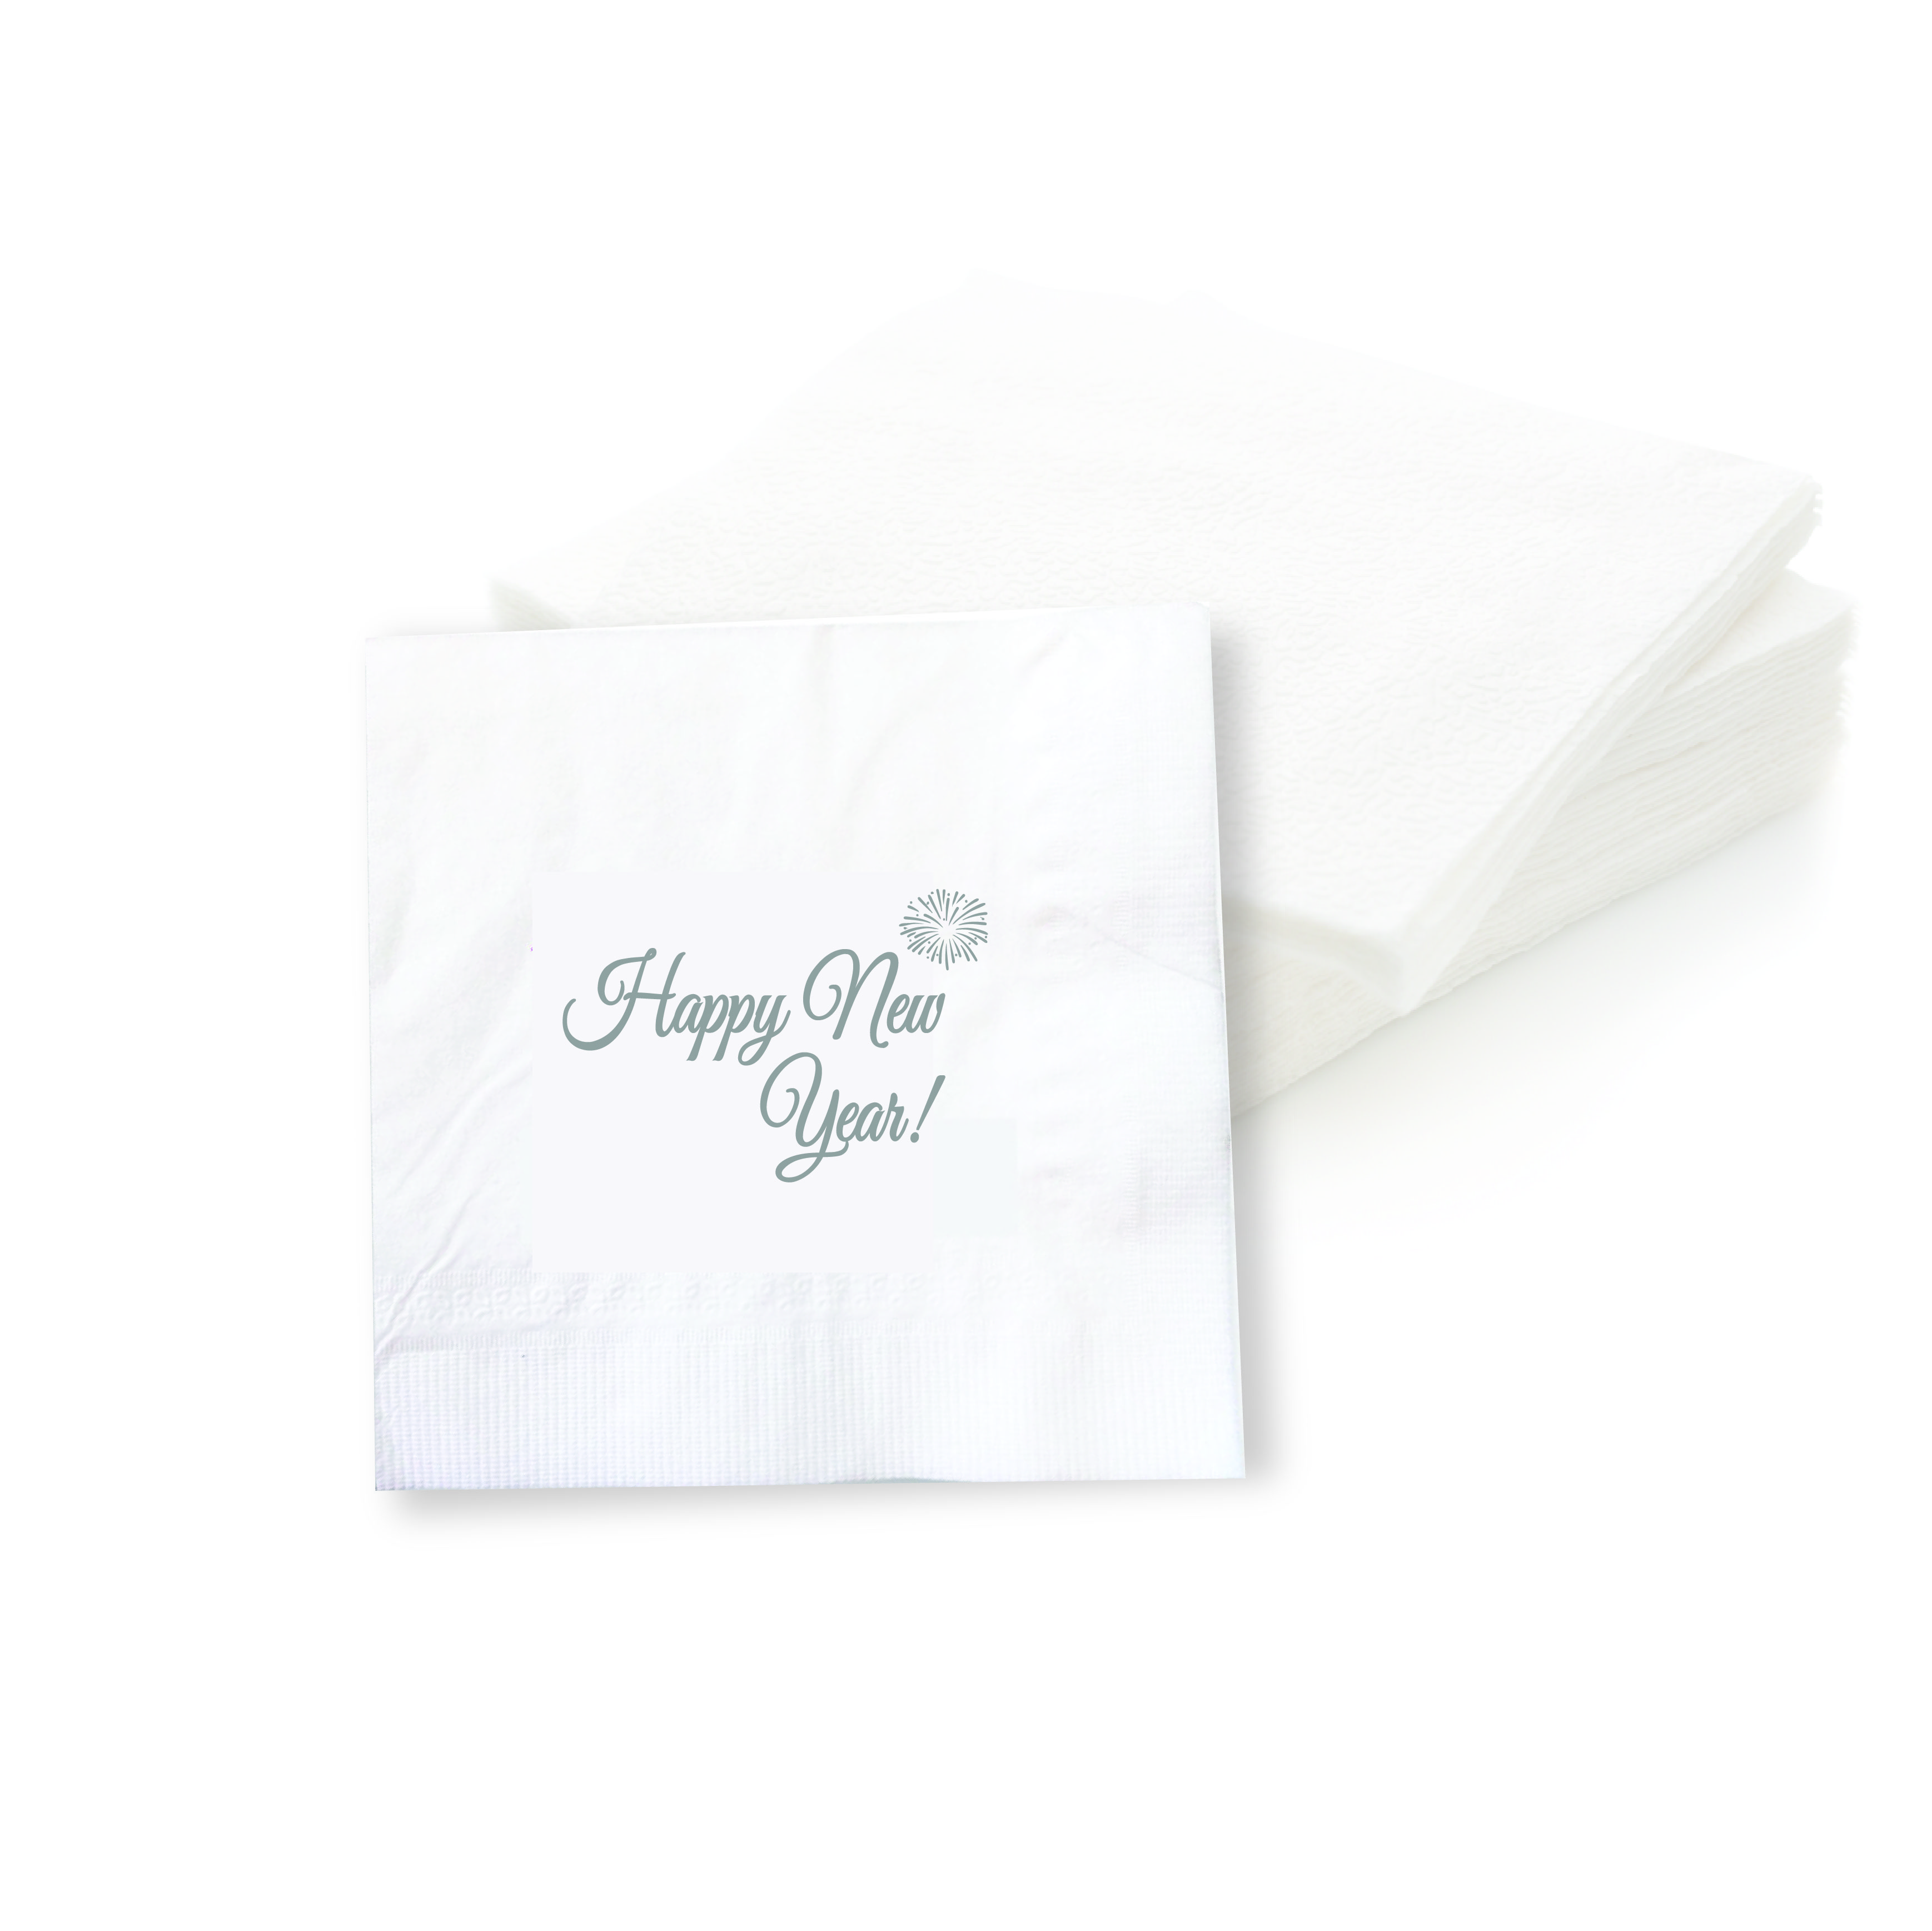 Happy New Year! Cocktail Napkins (Set of 50 Pieces)